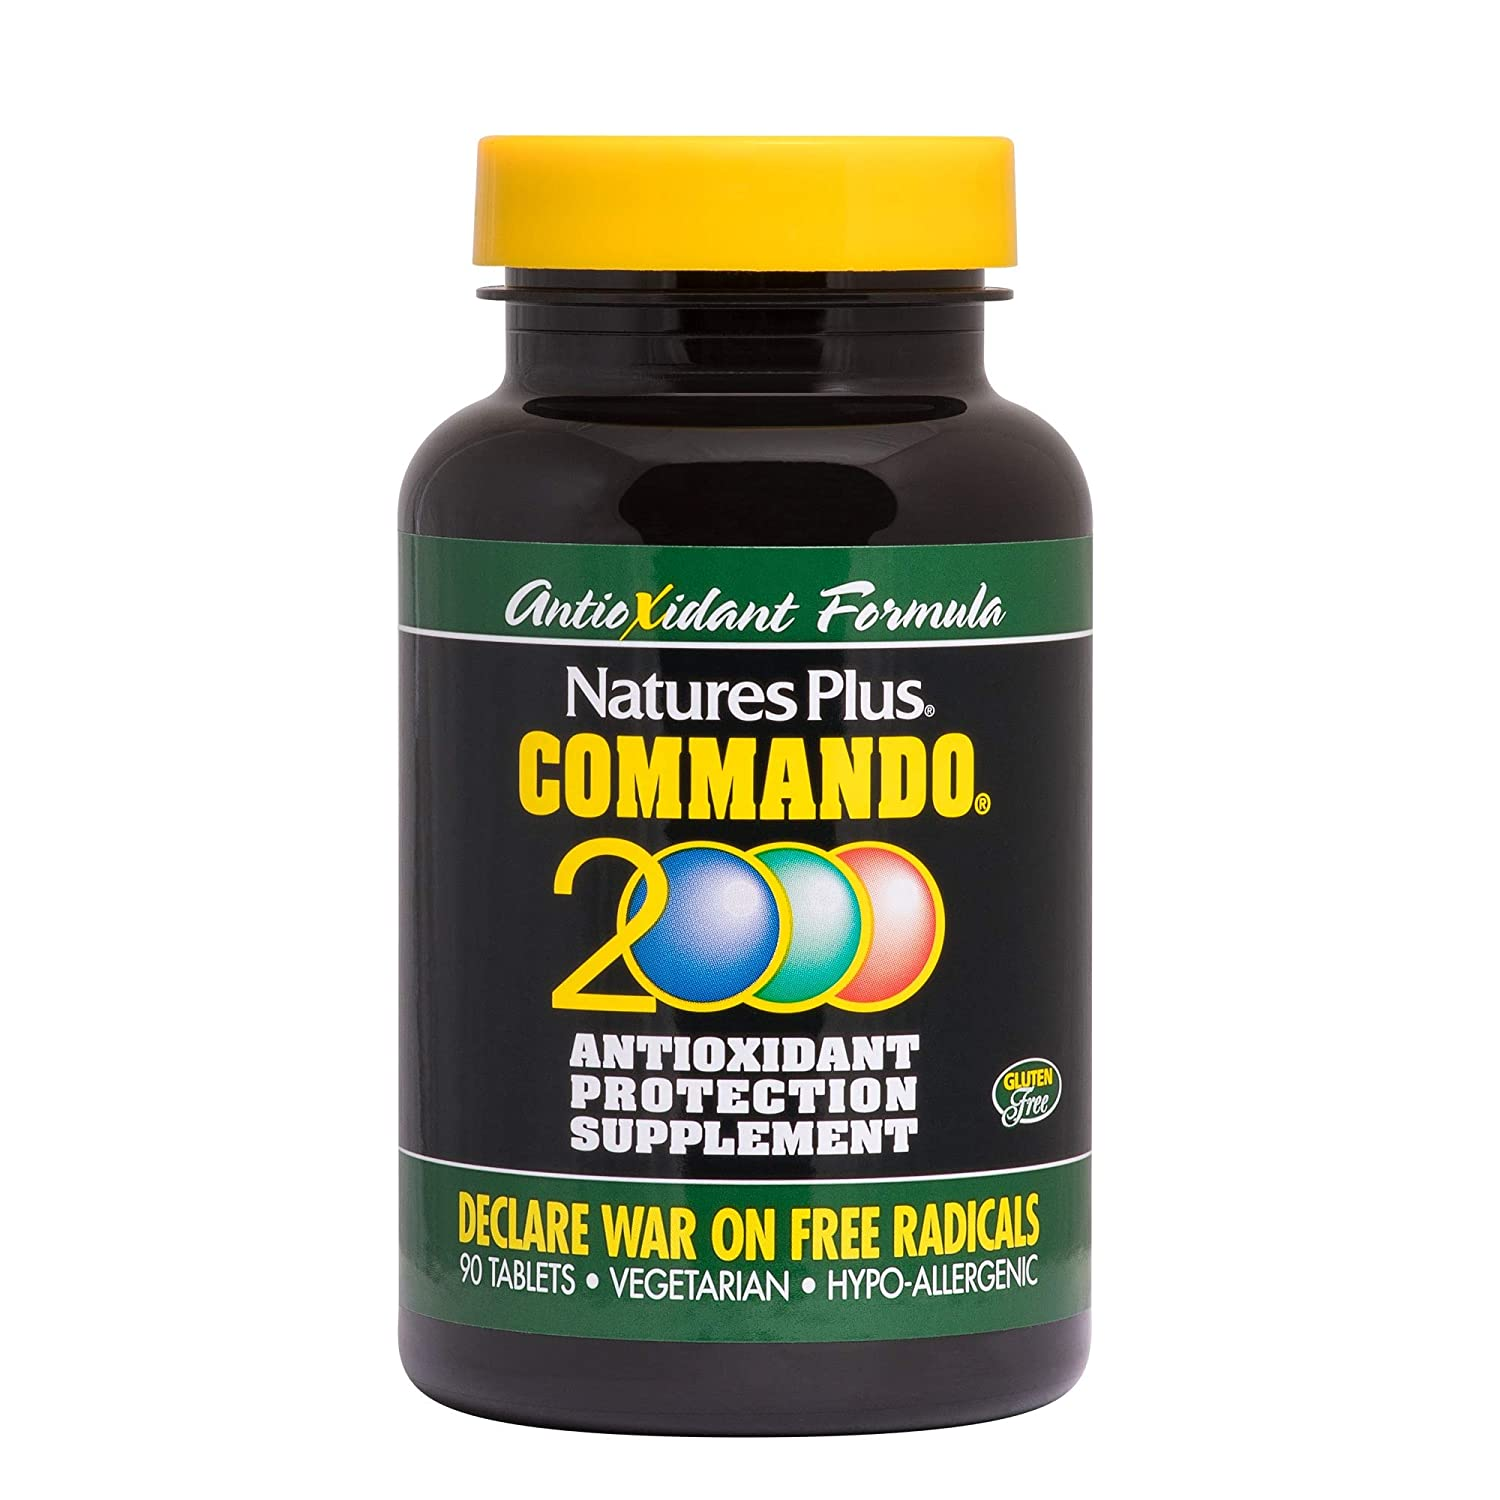 NaturesPlus Commando 2000-90 Vegetarian Tablets – Antioxidant Protection Supplement with Vitamins A, C, E, Zinc Herbs, Supports Free Radical Defense – Gluten-Free – 45 Servings